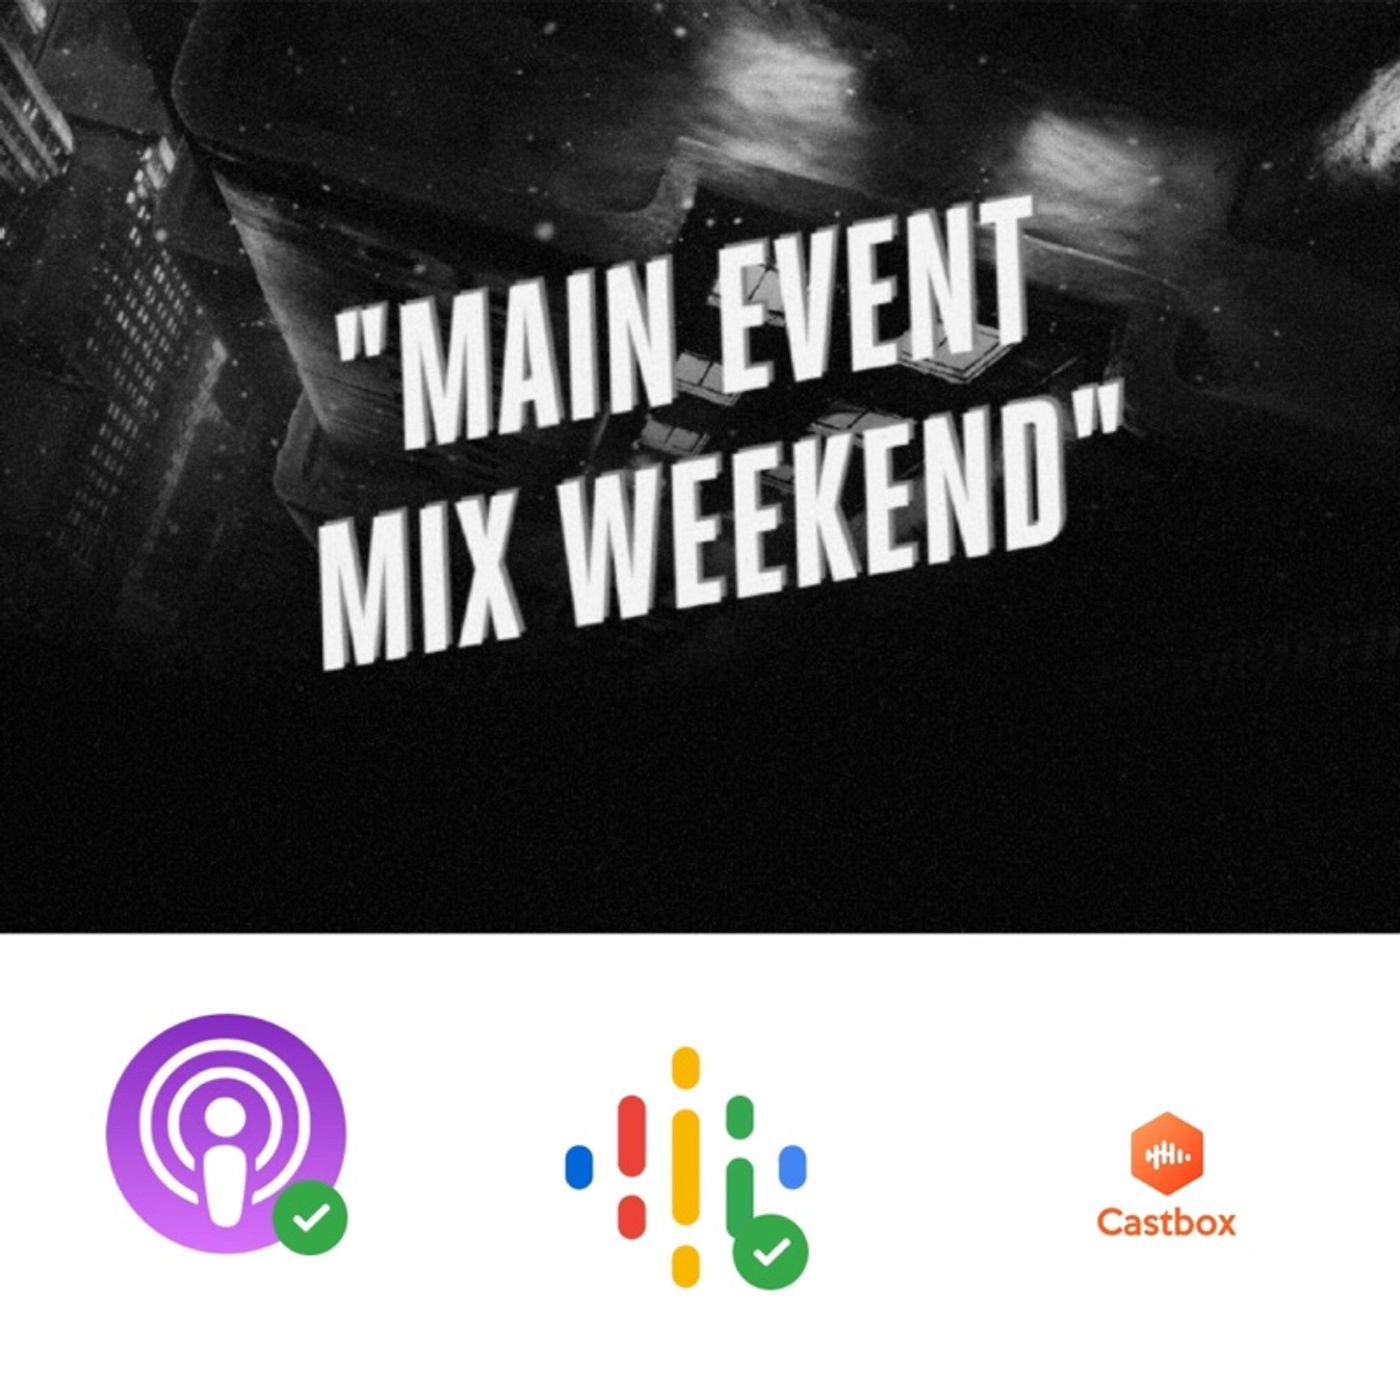 Episode 216 - Main Event Holiday Mix Weekend